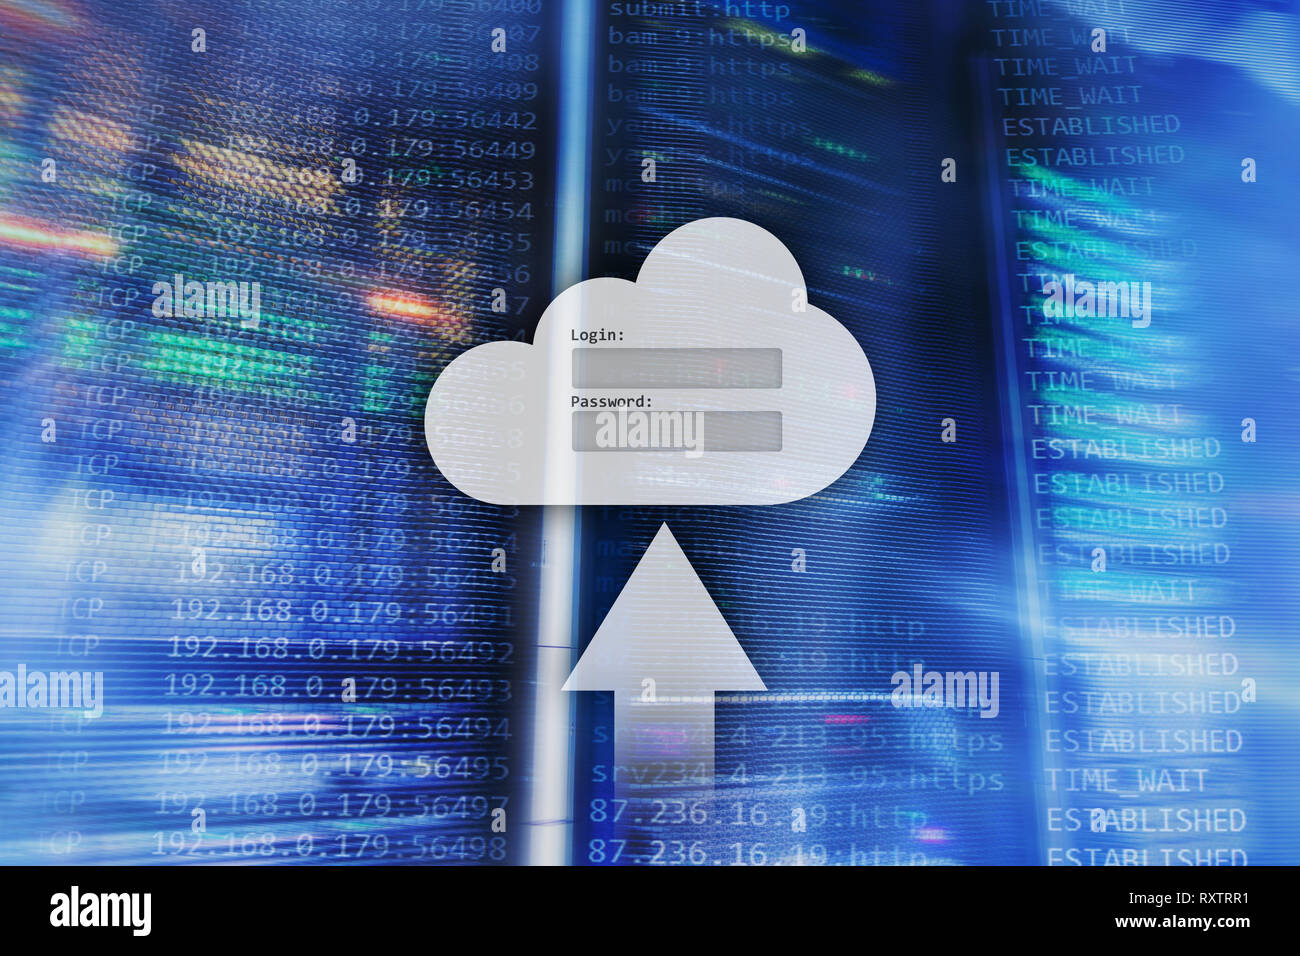 Cloud storage, data access, login and password request